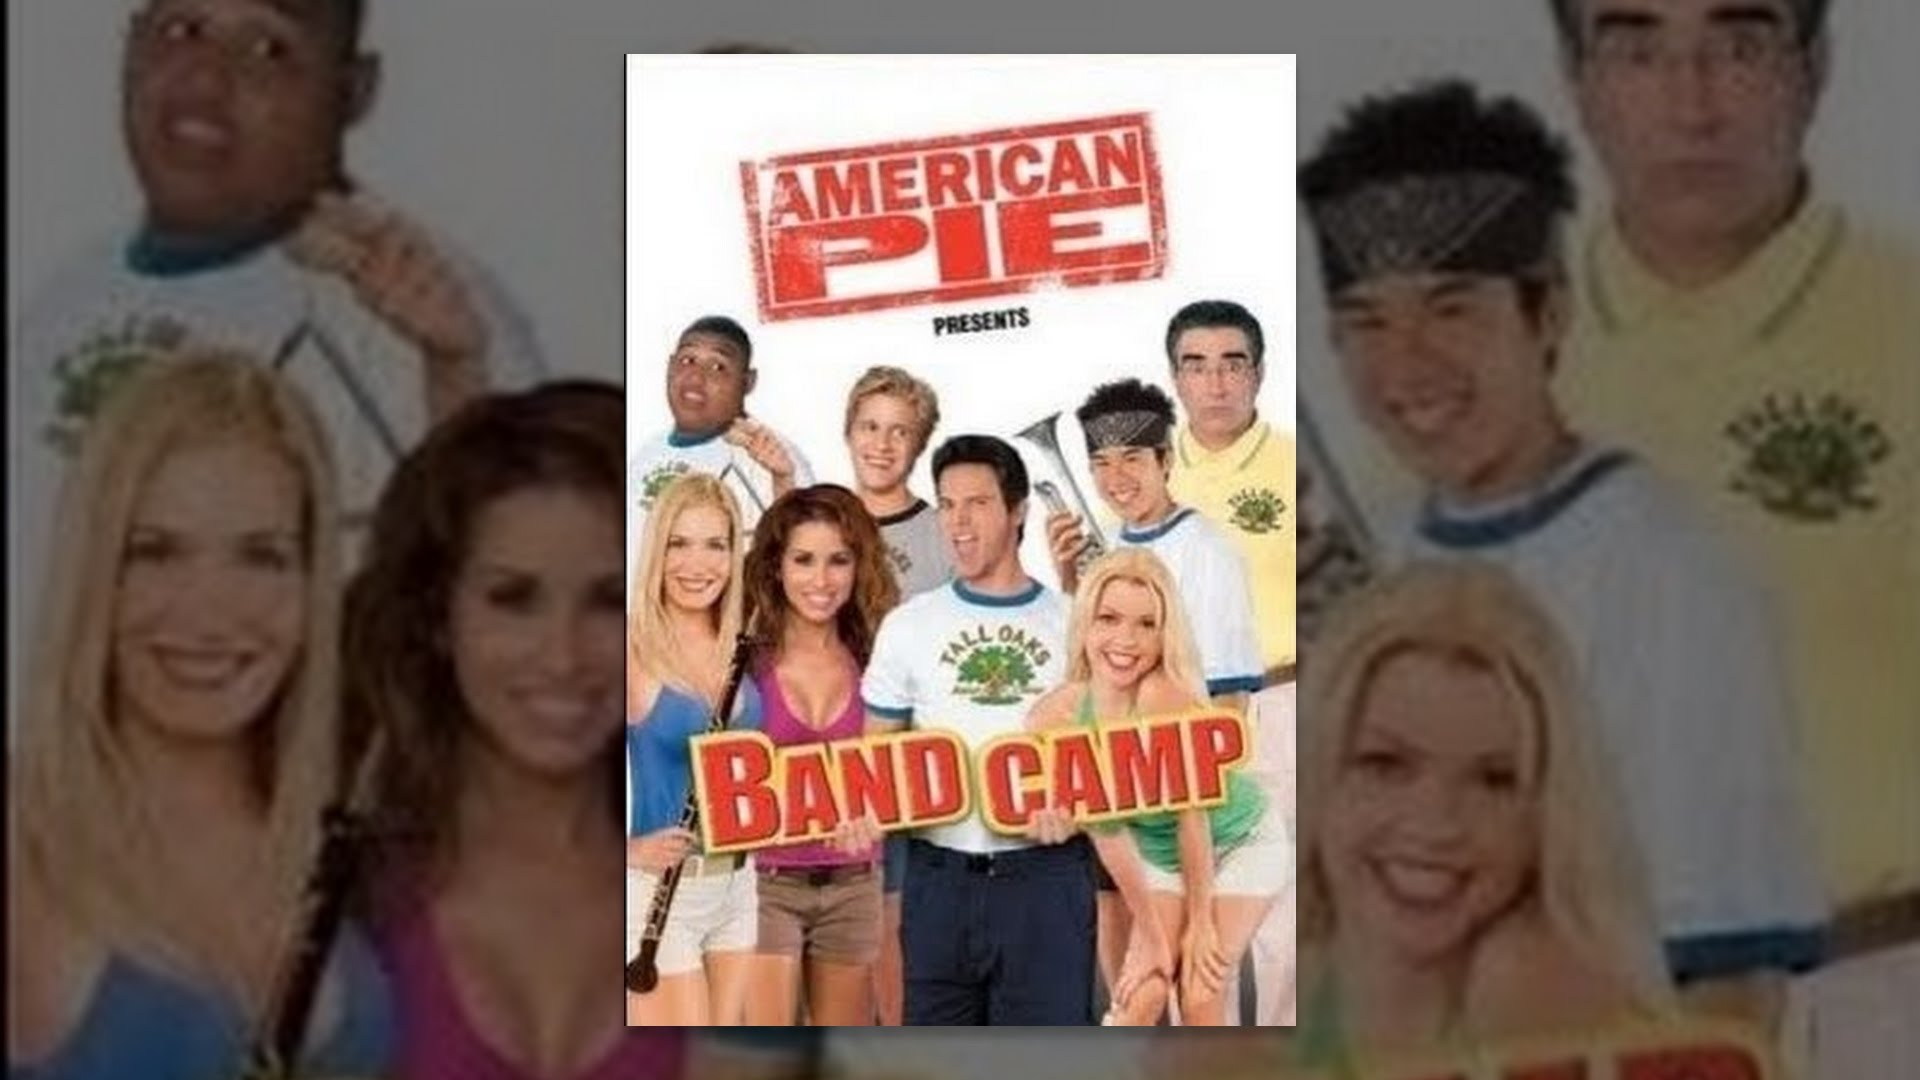 That interfere, American pie band camp